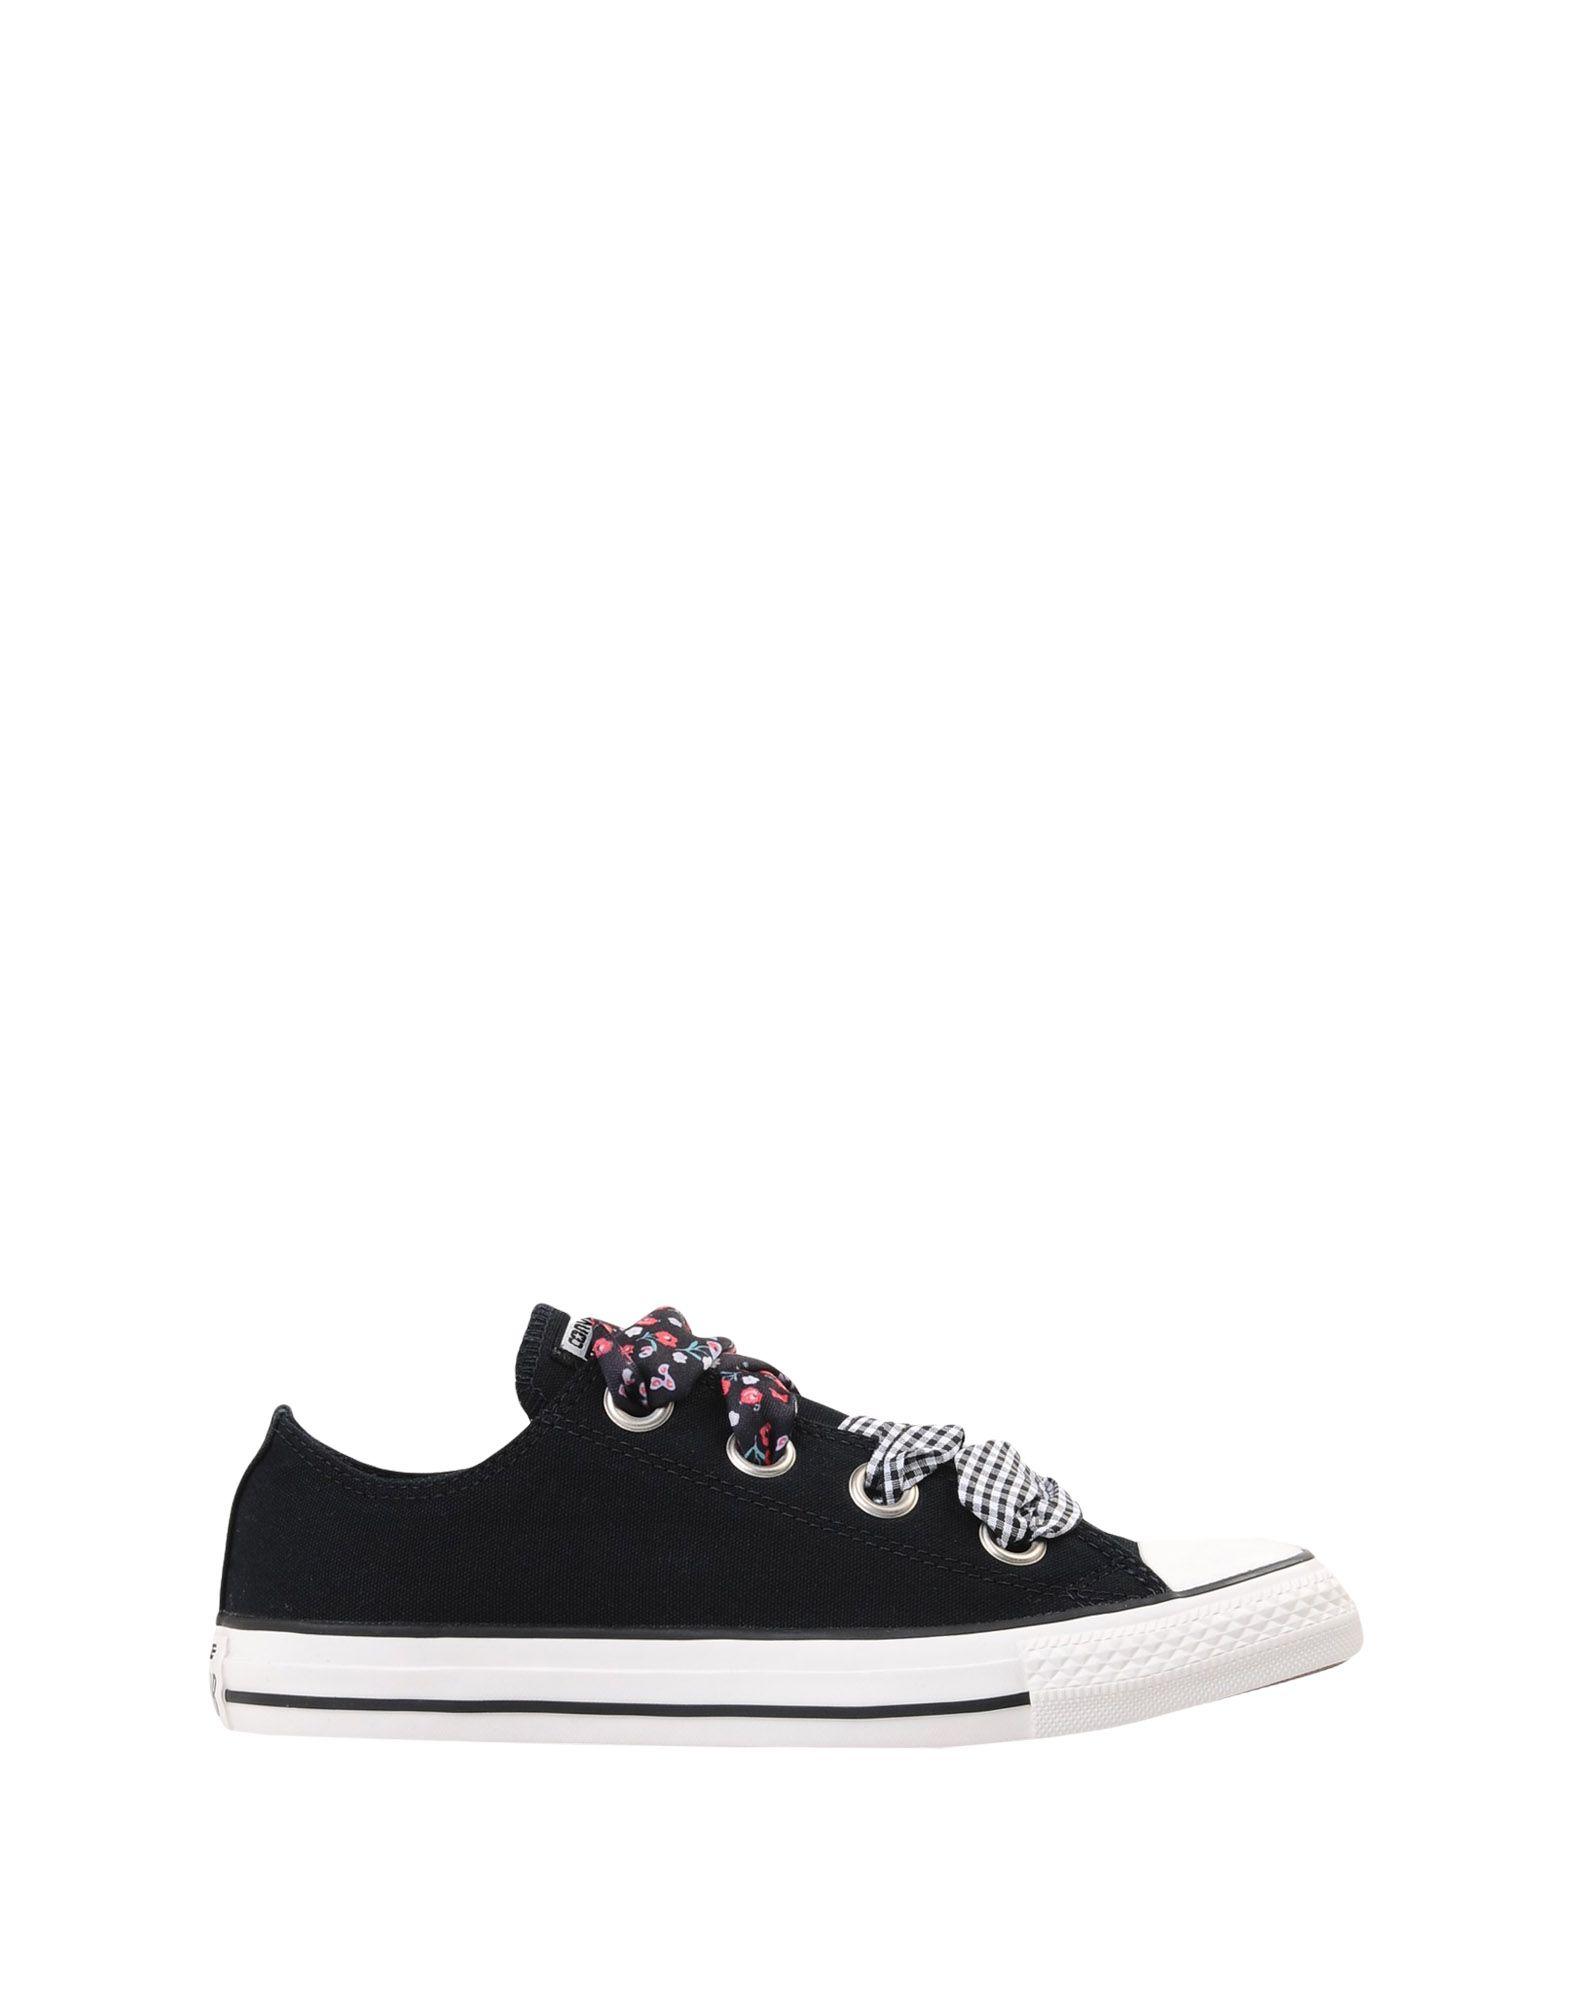 Sneakers Converse All Star Ctas Ox Big Eyelet Flowers Details - Femme - Sneakers Converse All Star sur